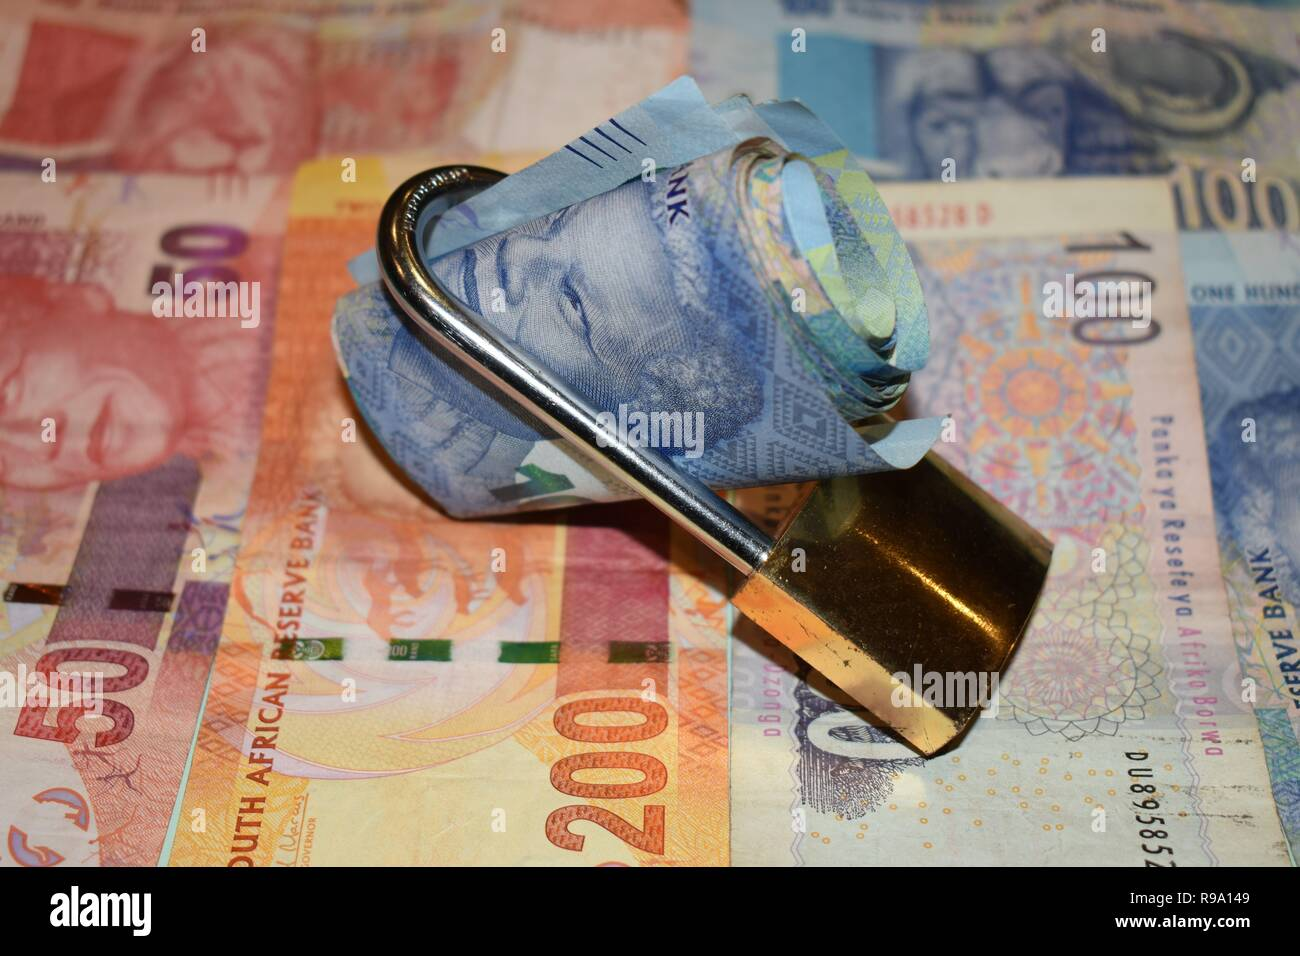 Secure South Africa currency - Stock Image